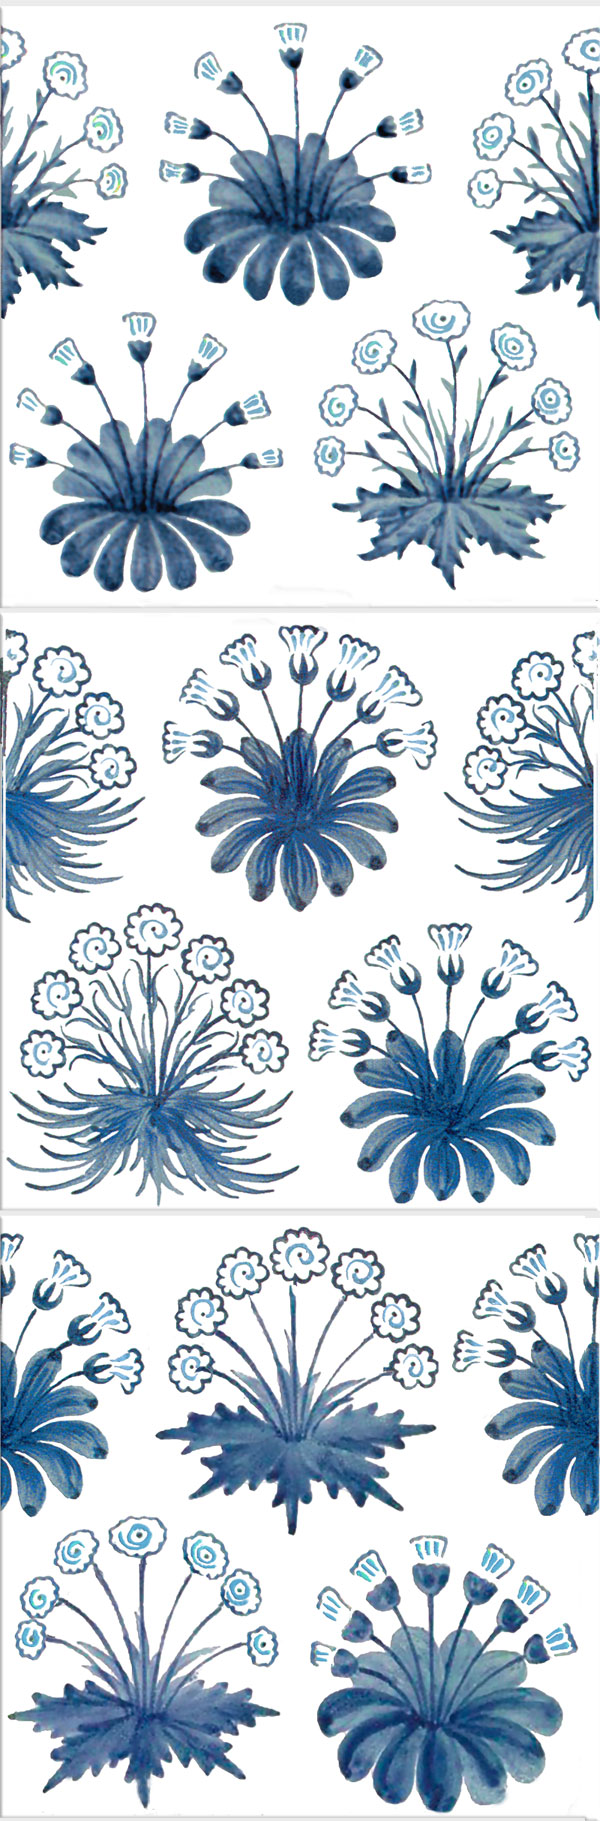 William Morris Daisy Tiles, 1860s-1880s